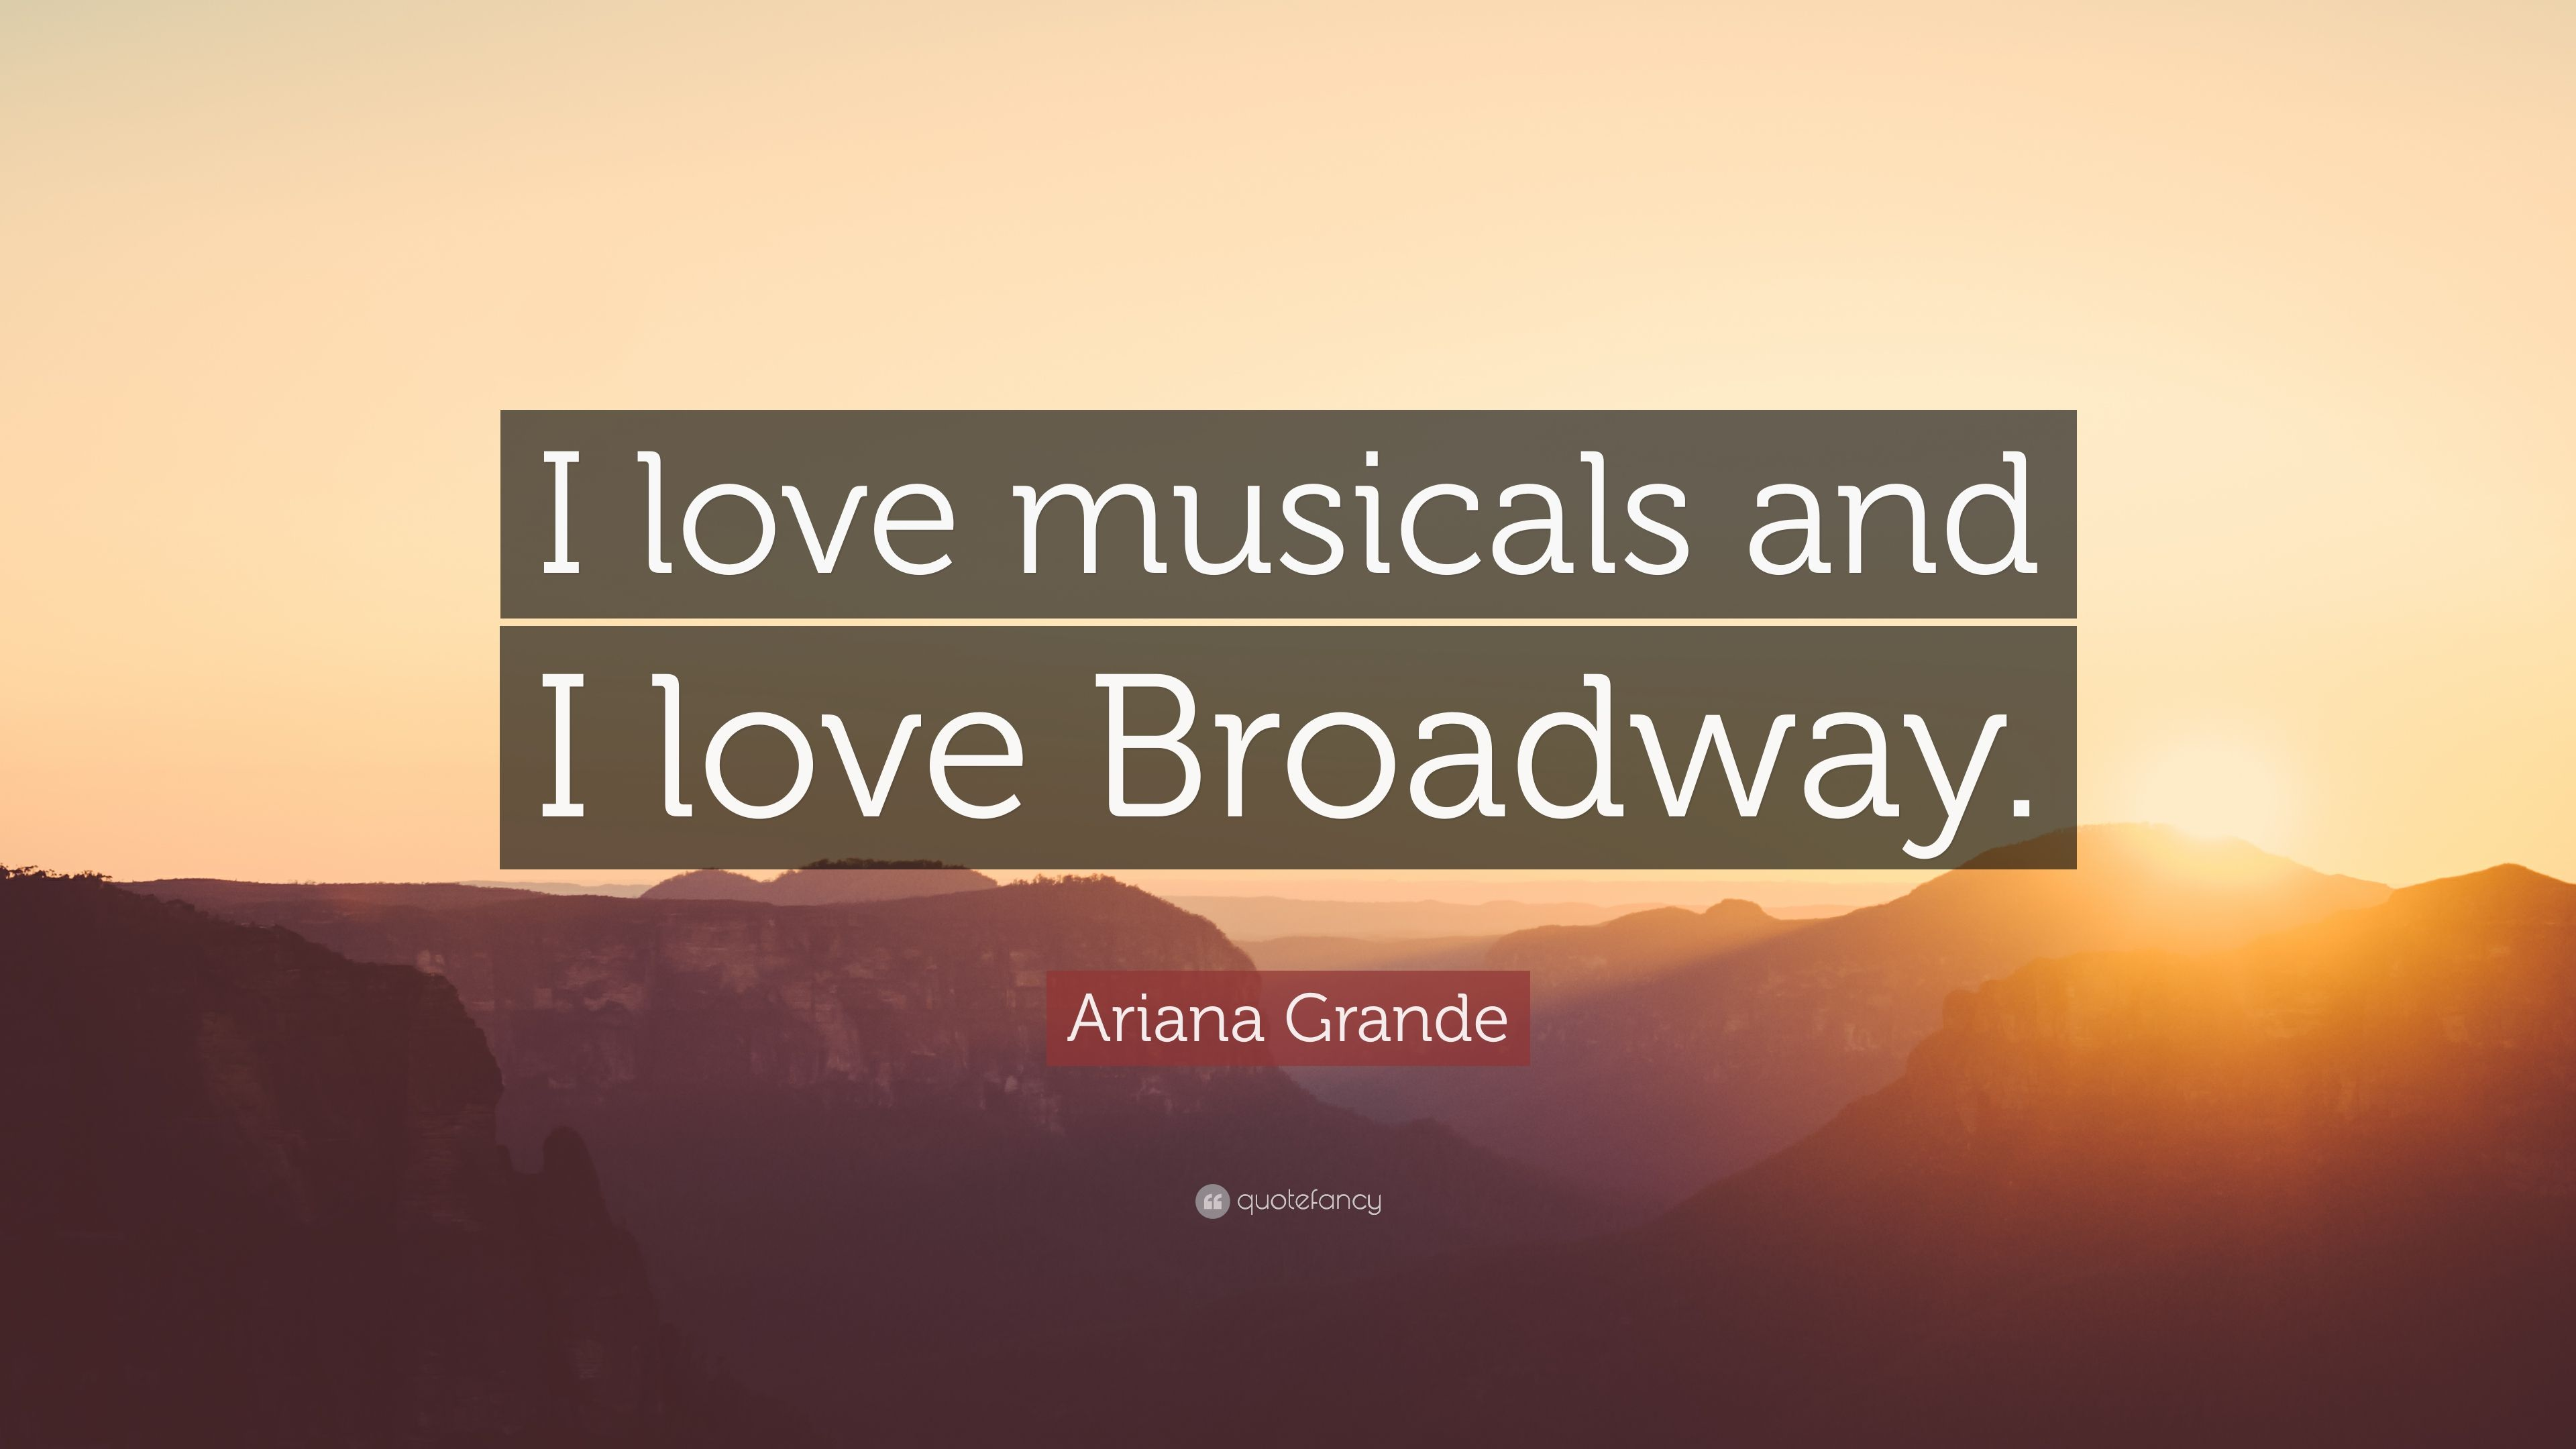 Ariana Grande Quote I Love Musicals And I Love Broadway 9 Wallpapers Quotefancy